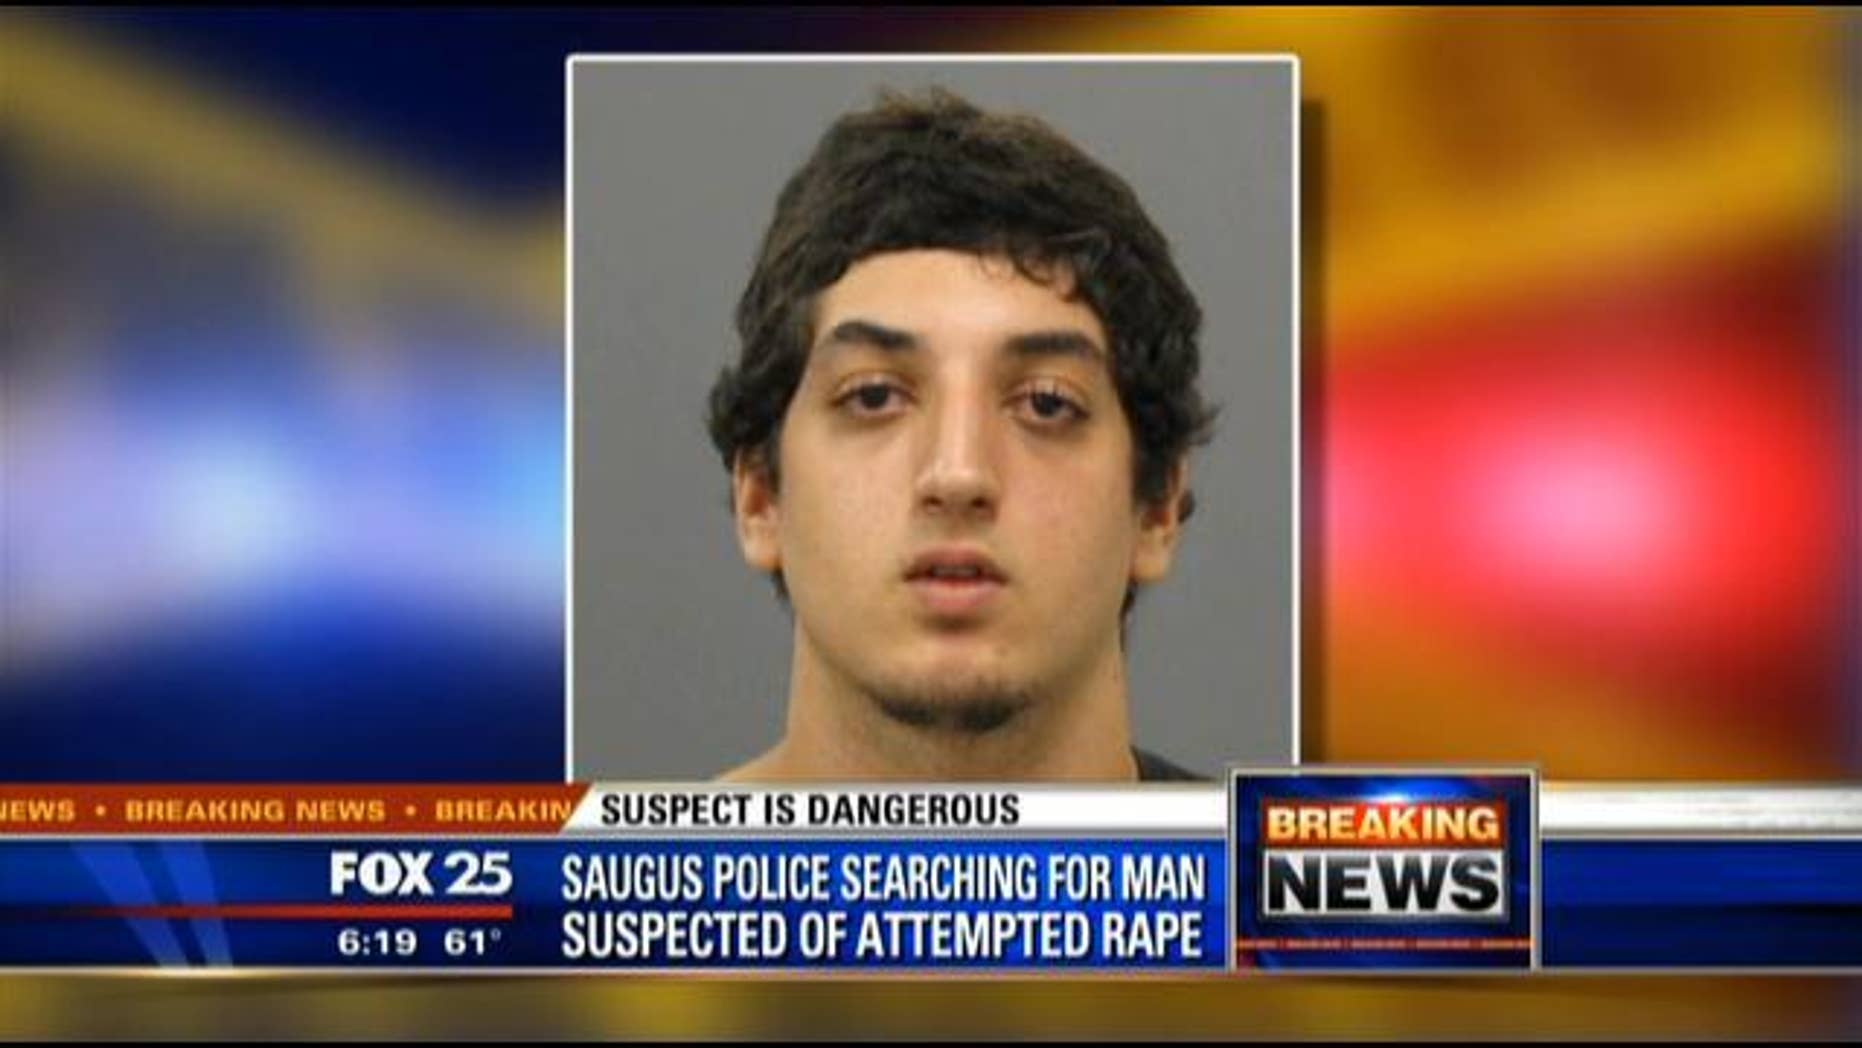 This image, provided by Fox affiliate WFXT, shows 19-year-old Rashad Deihim.